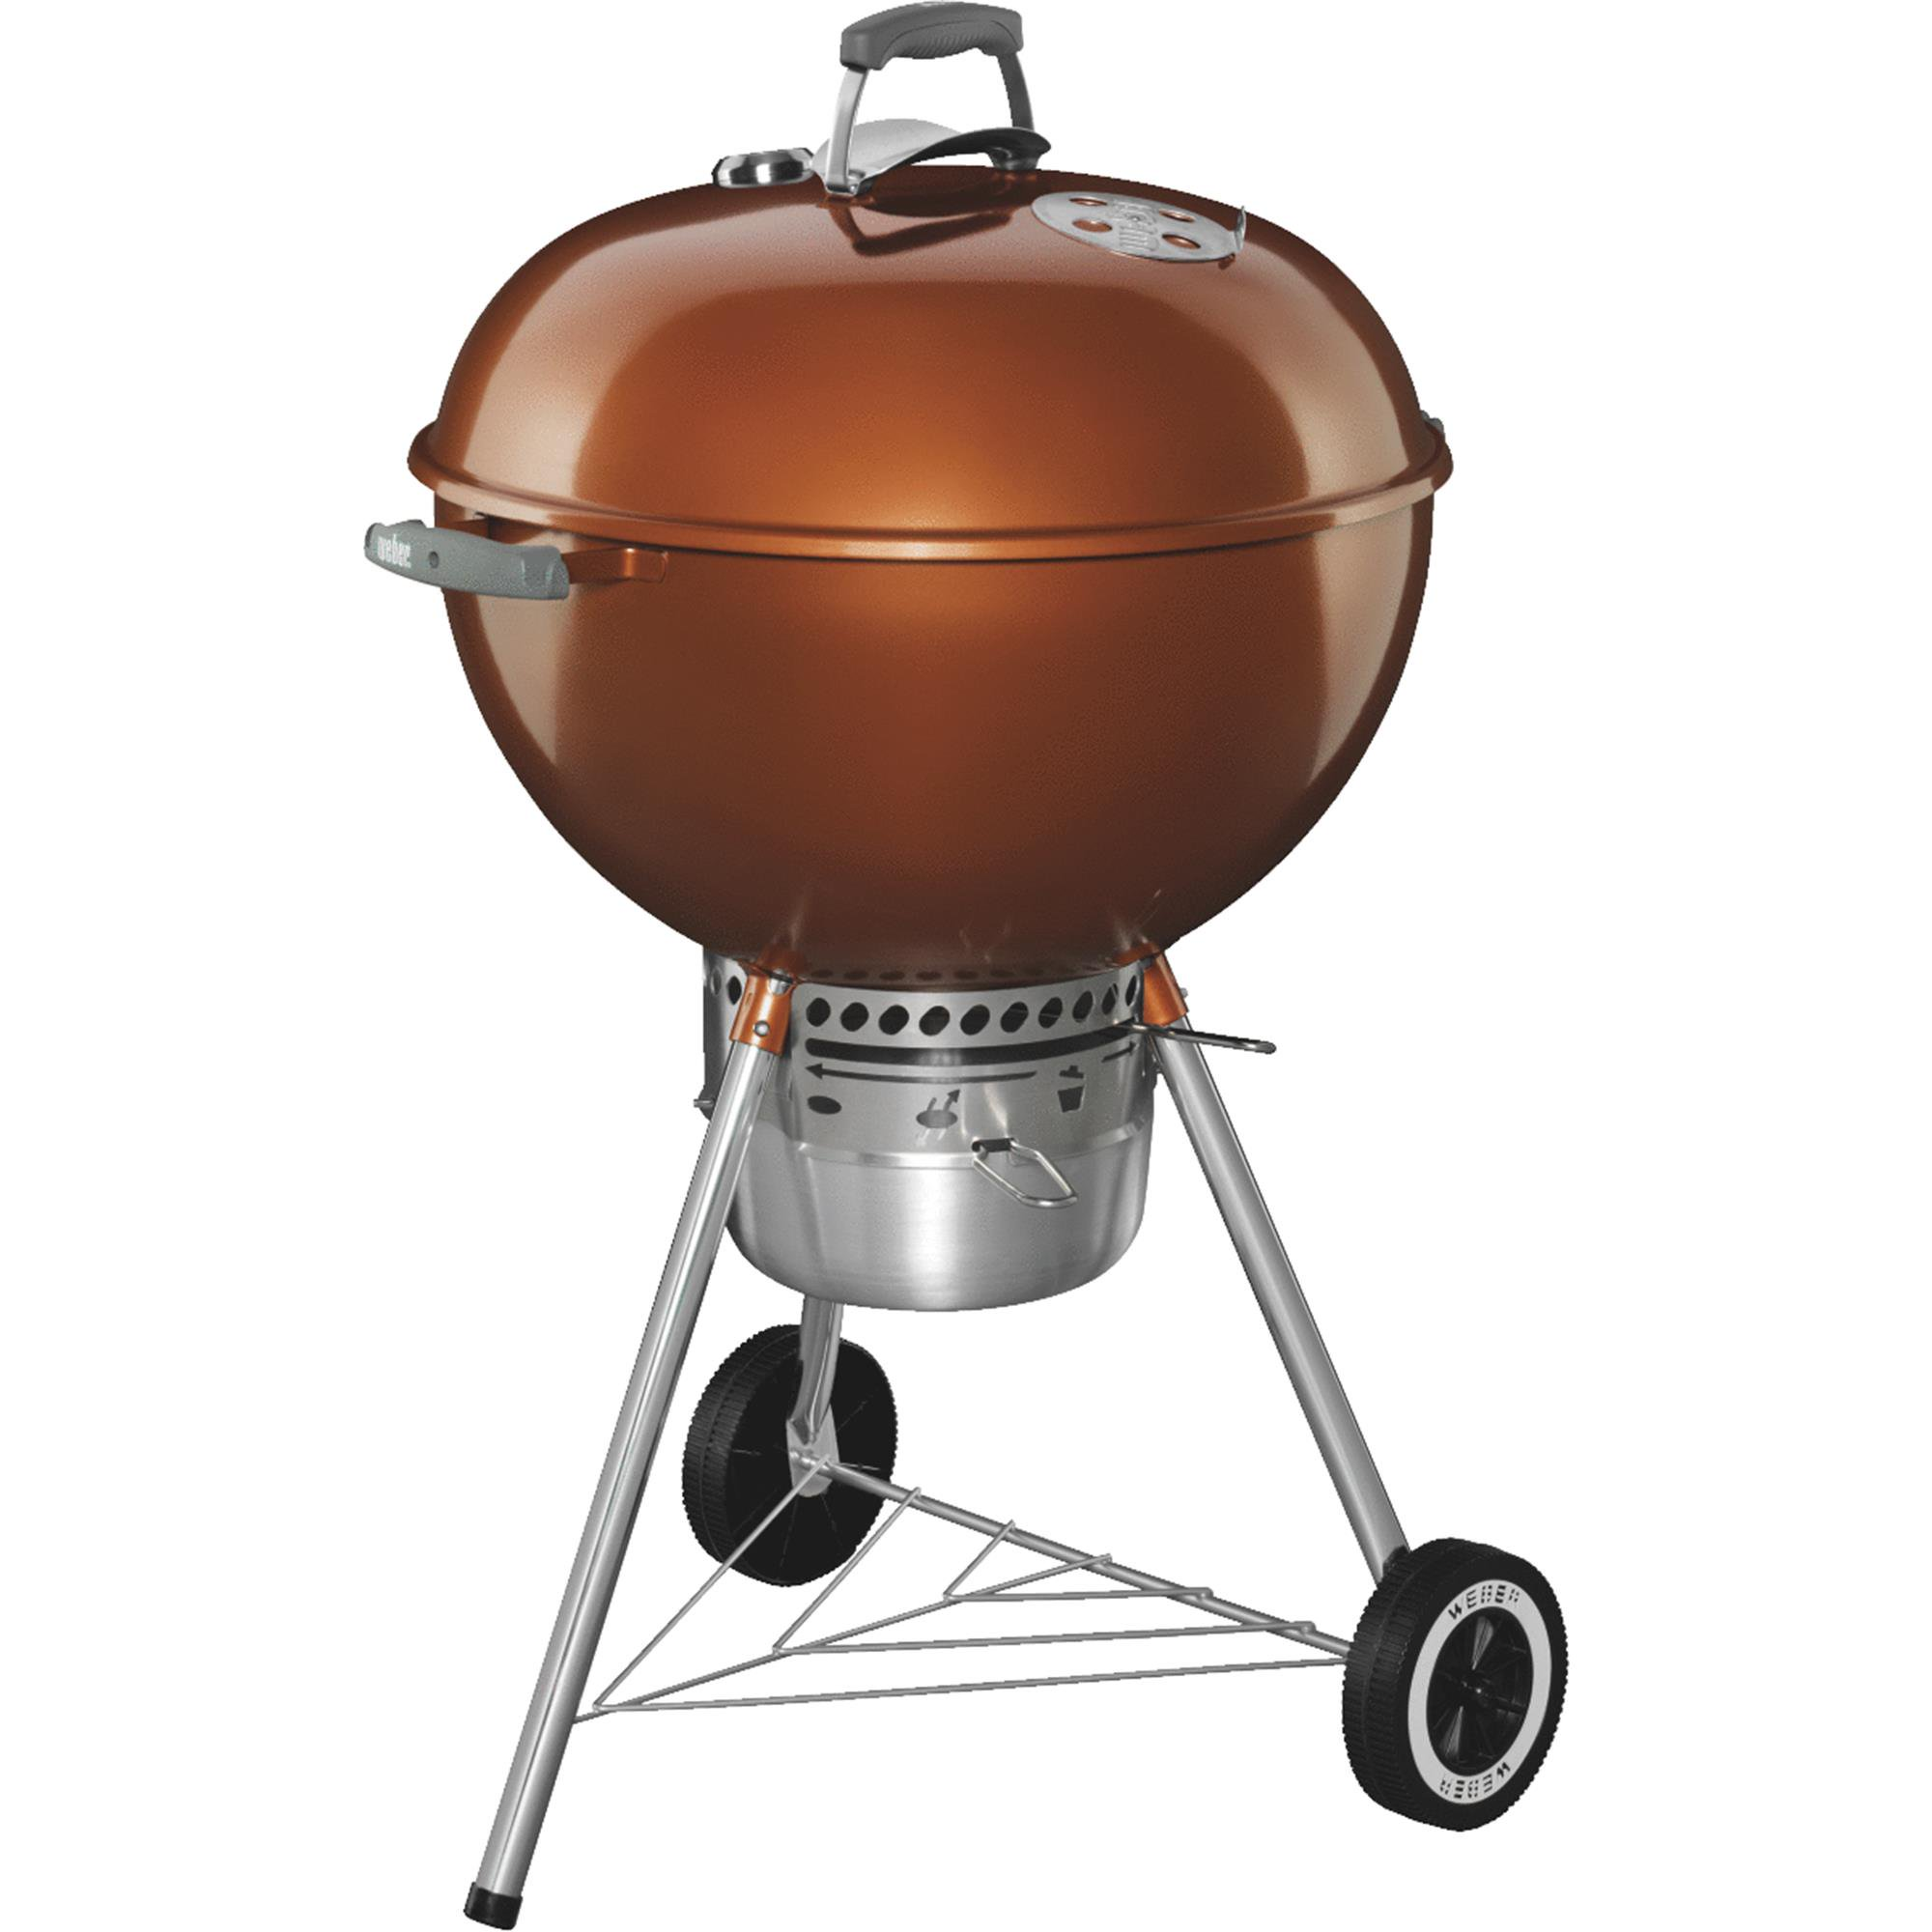 Weber Original Kettle 22 In. Premium Charcoal Grill by Charcoal Grills